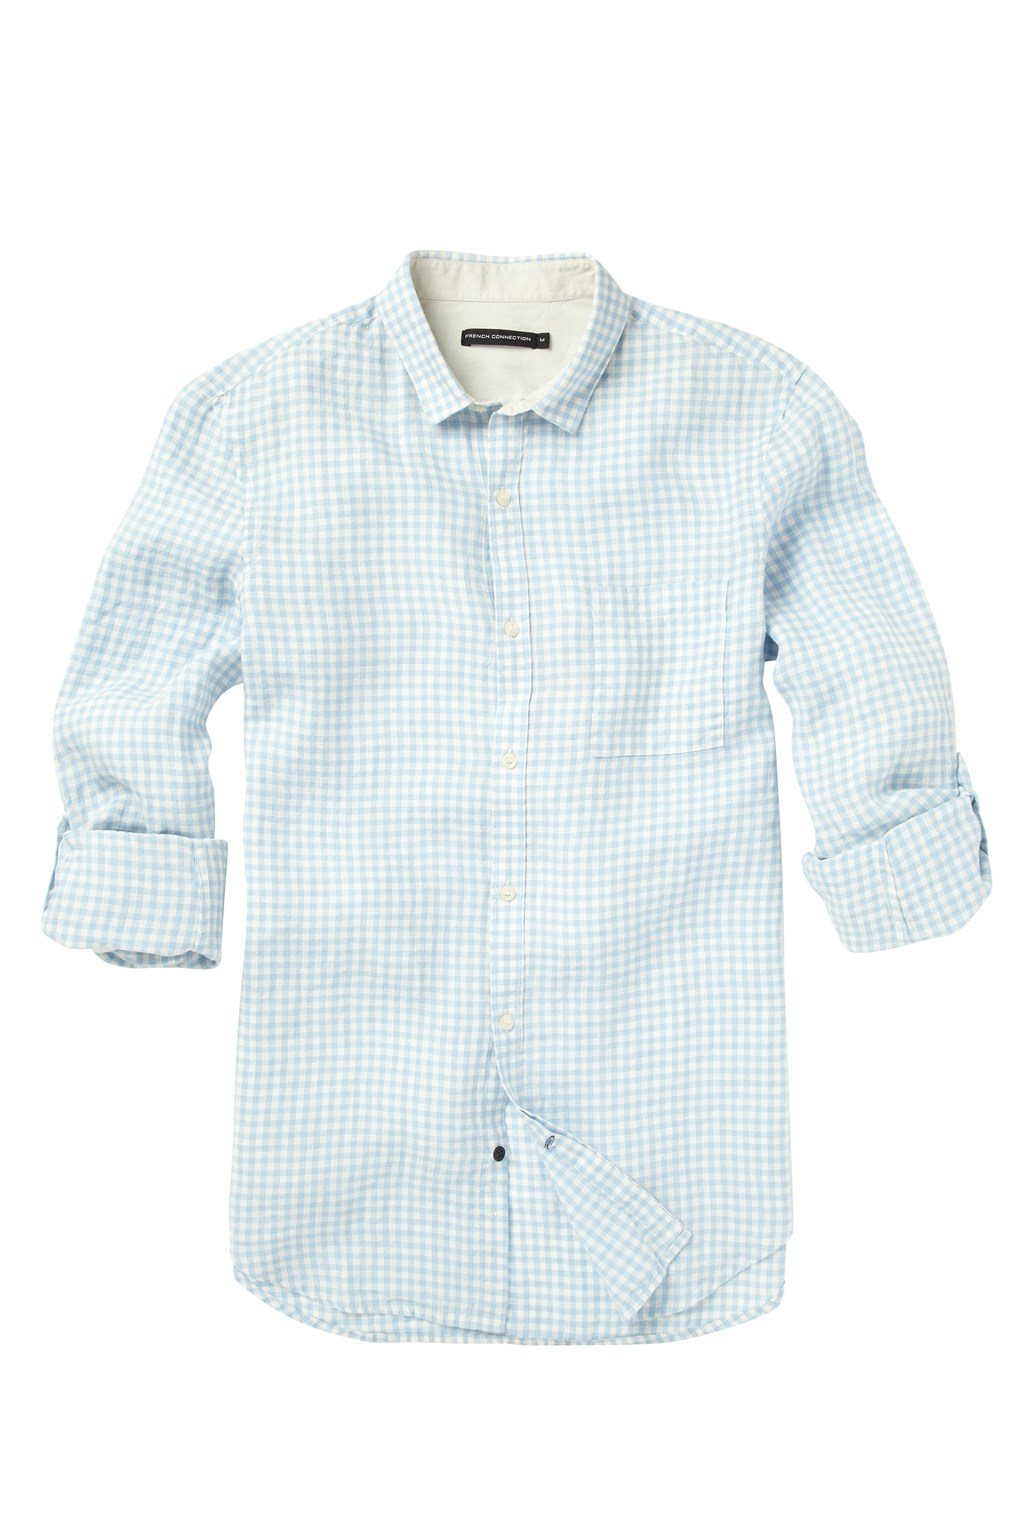 French Connection Hansen Linen Shirt product image